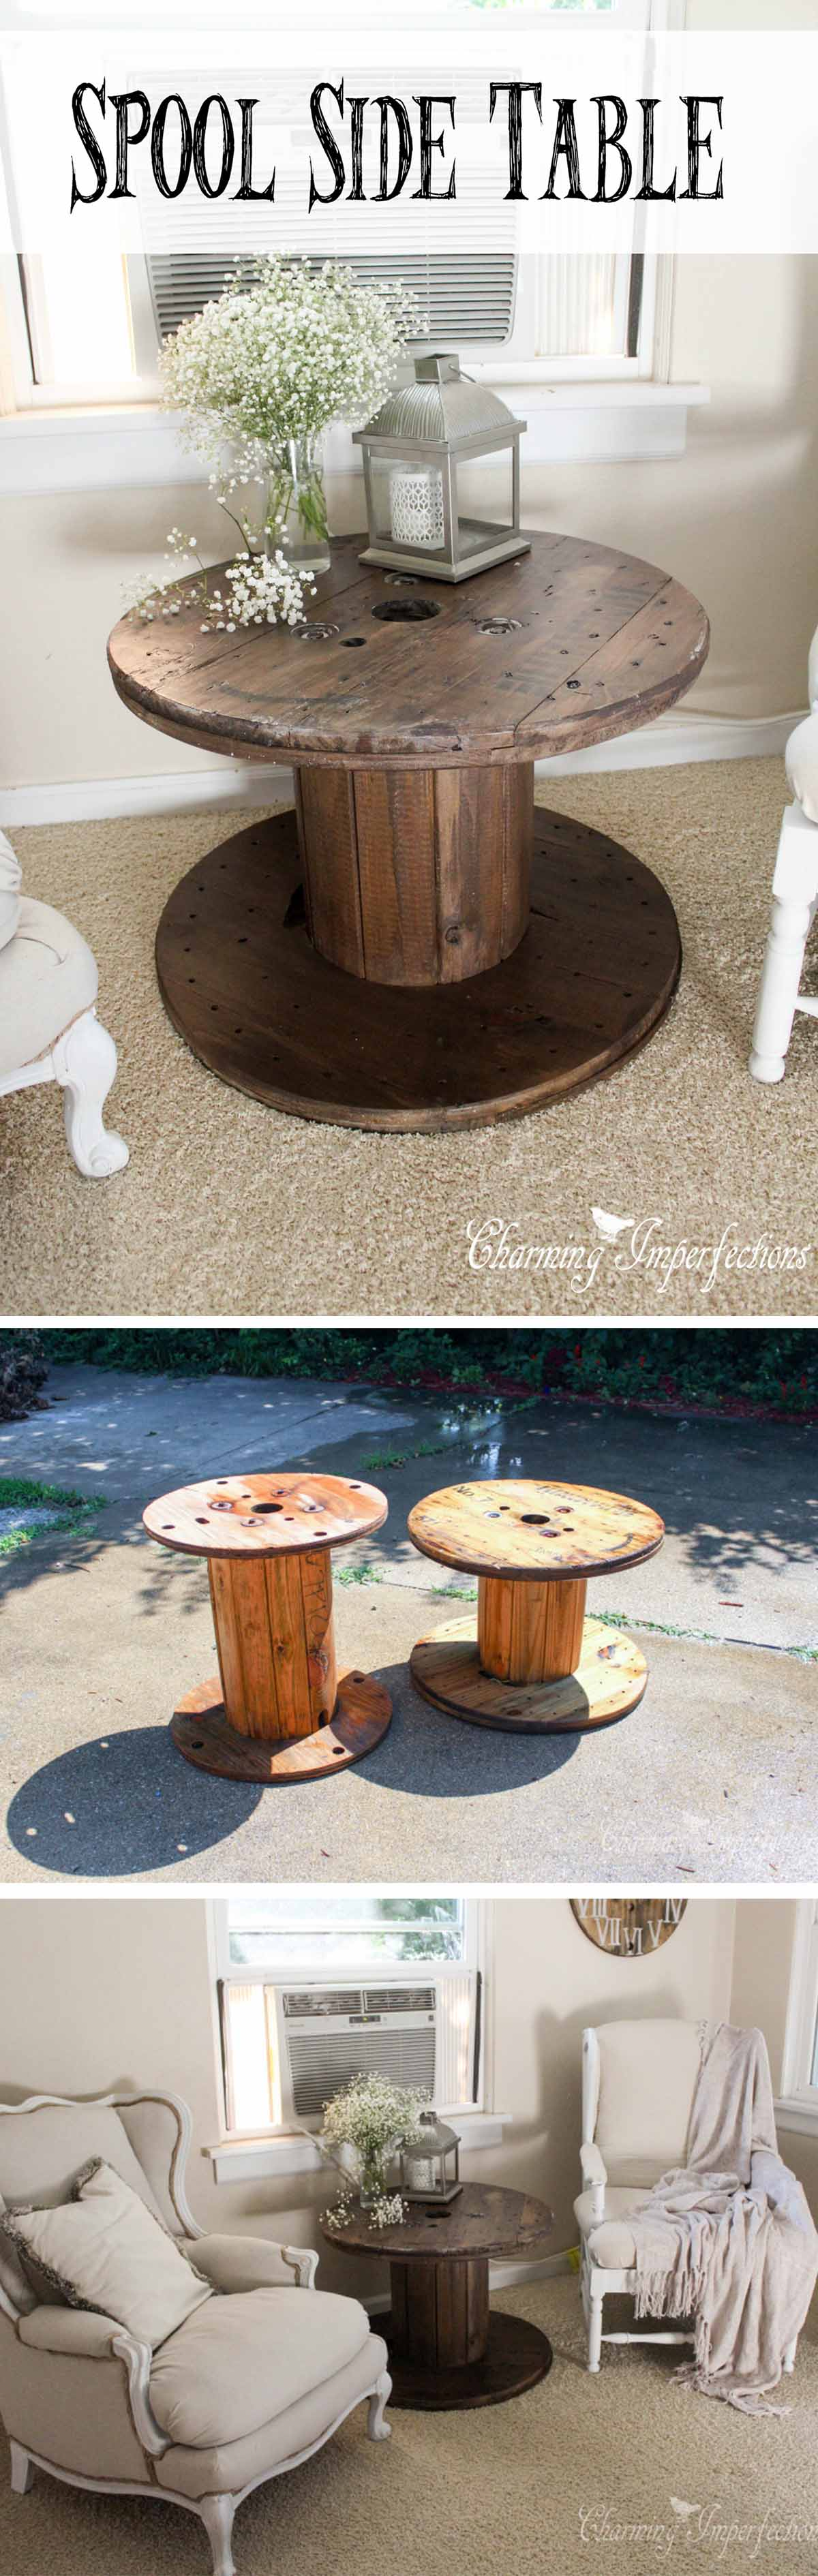 best diy farmhouse coffee table ideas and designs for homebnc accent easy industrial wooden spool marble door threshold clear dark green red white patio umbrella blue kitchen